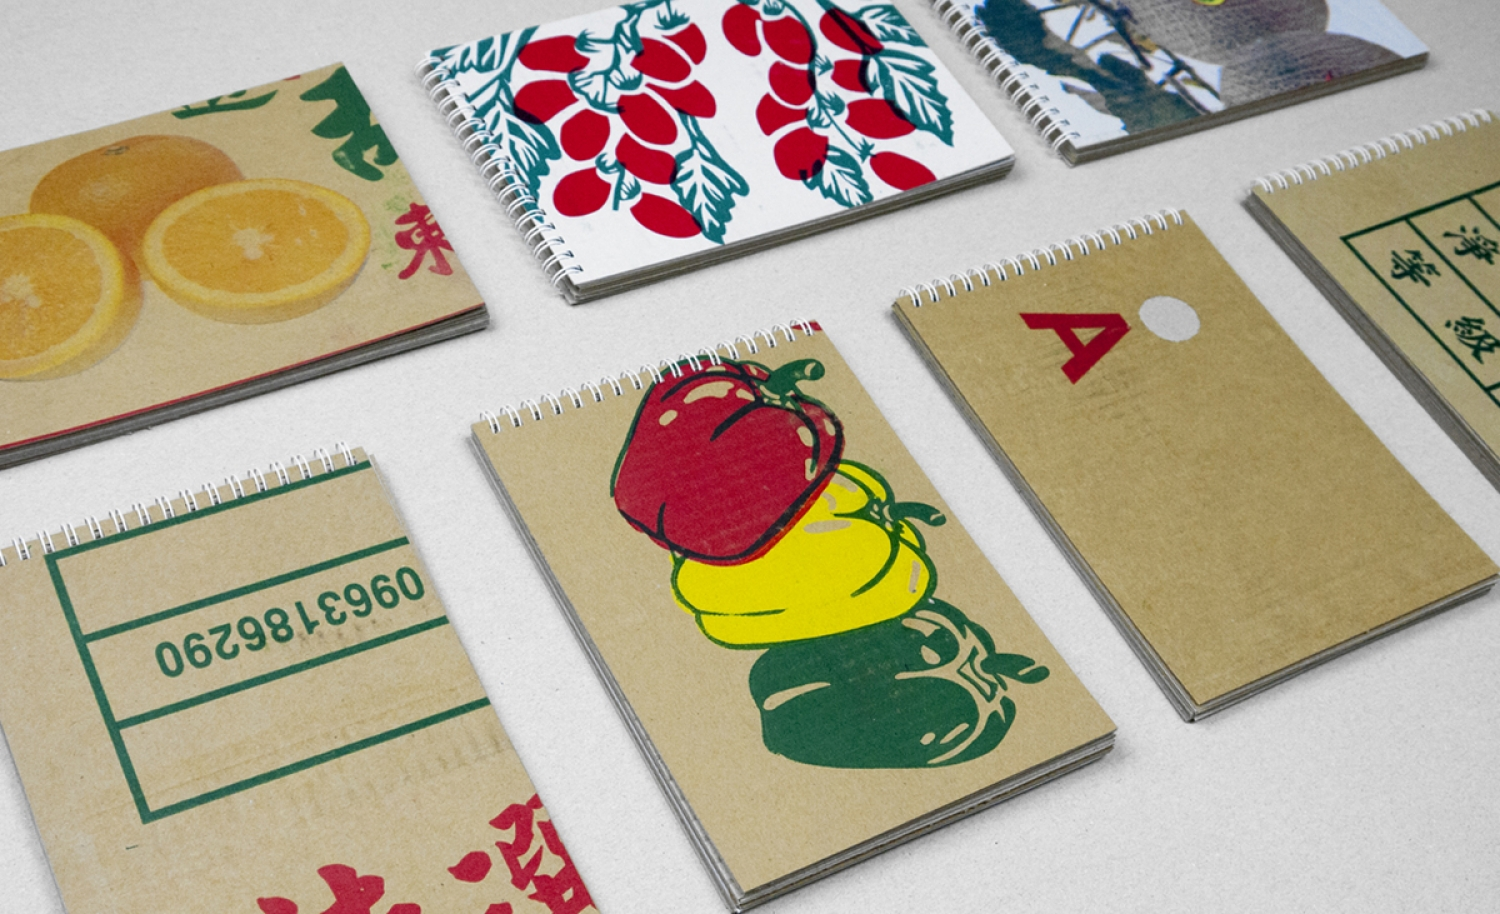 Loose-leaf A5 Recycled Corrugated Paper Notebook